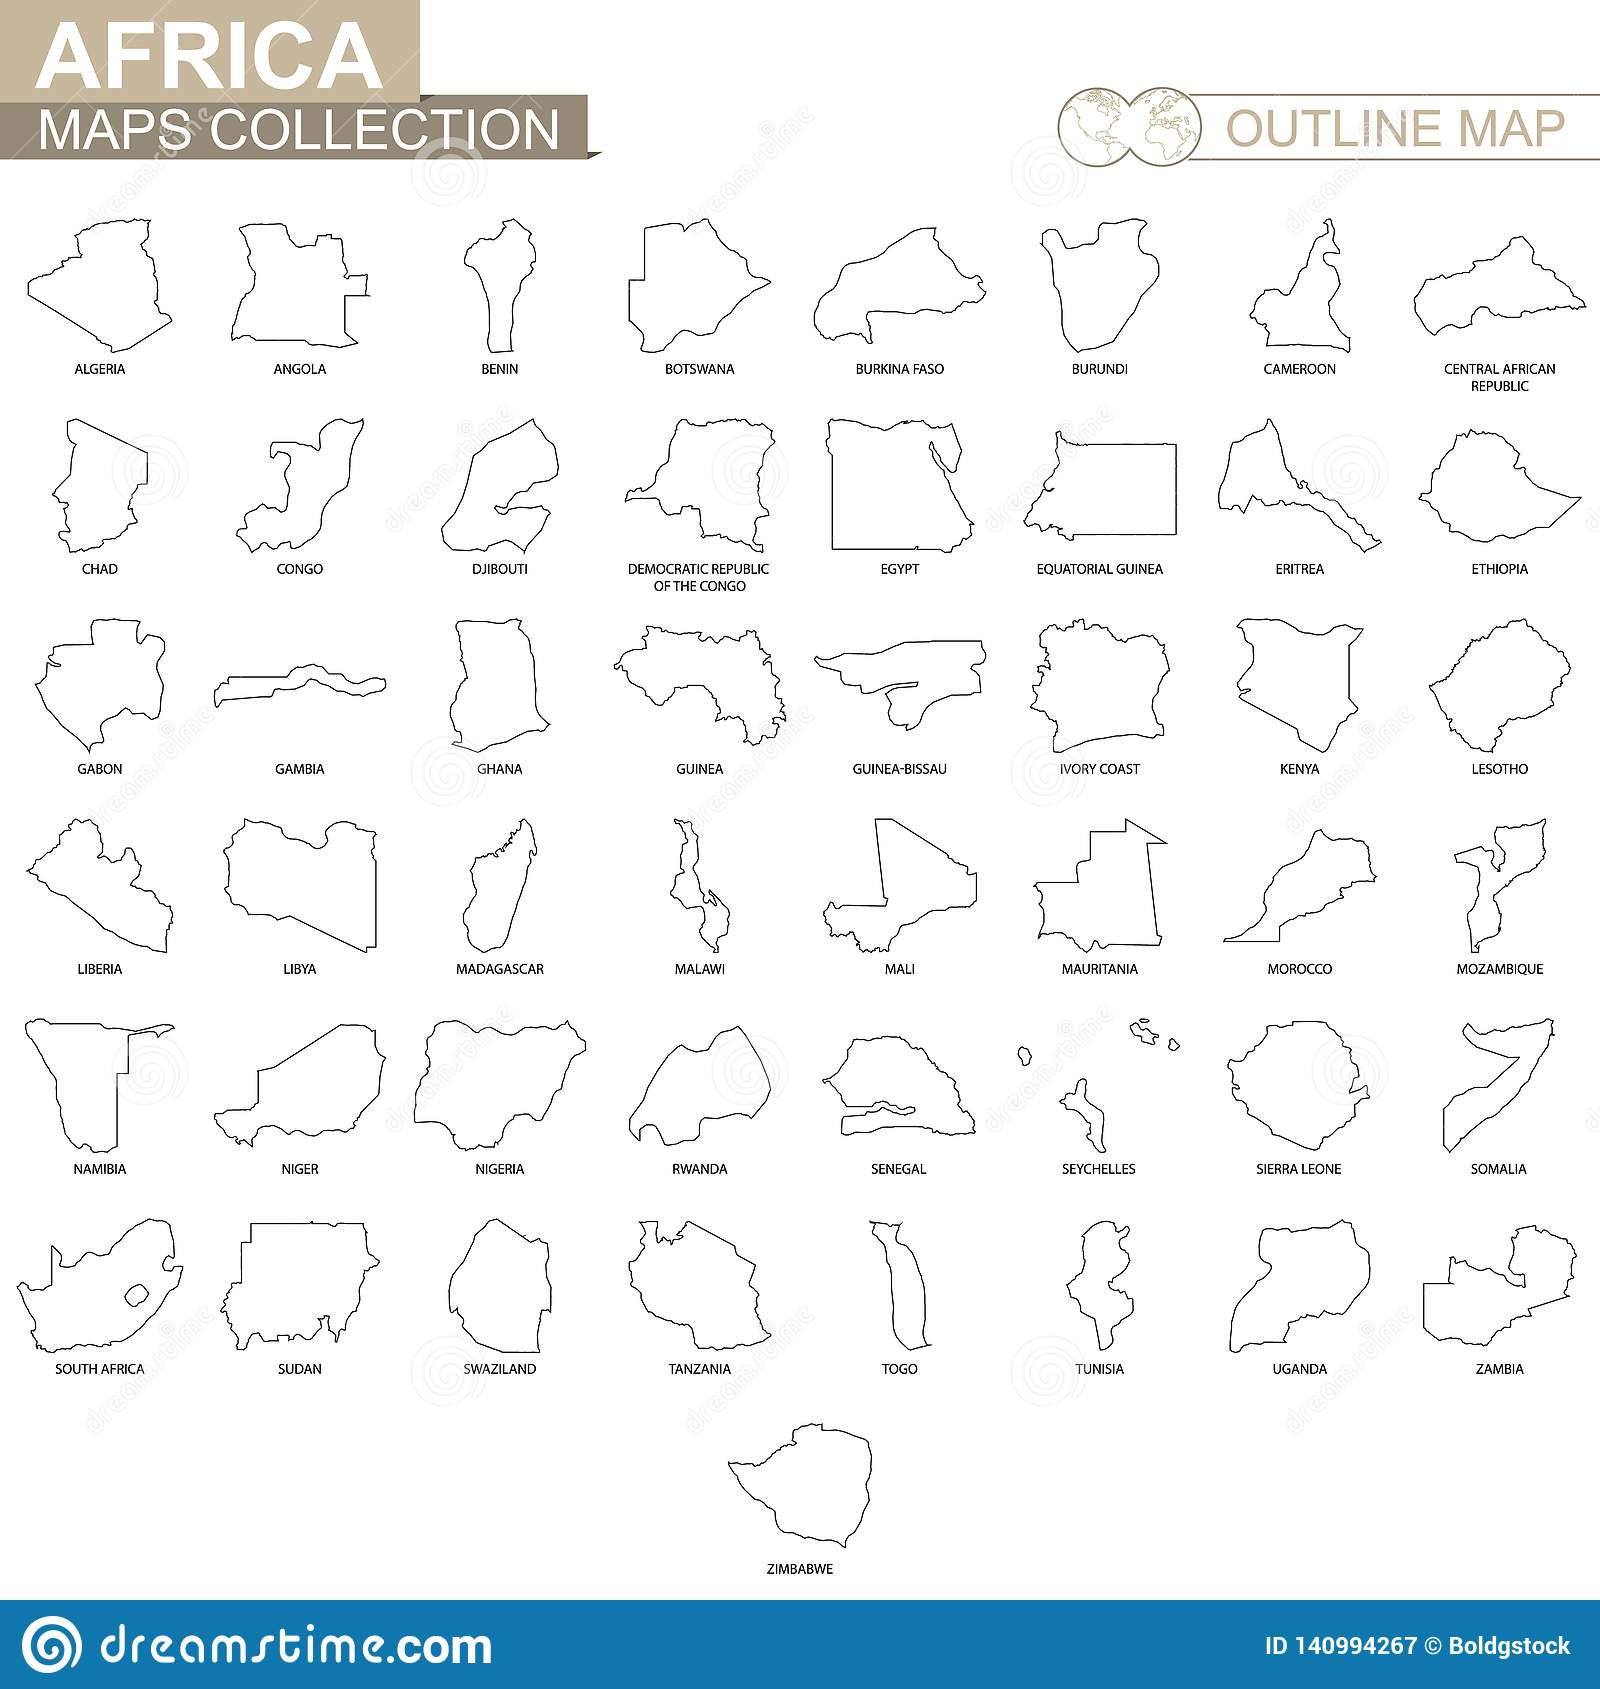 Outline Maps Of African Countries Collection Stock Vector Illustration Of Cartography Congo 140994267